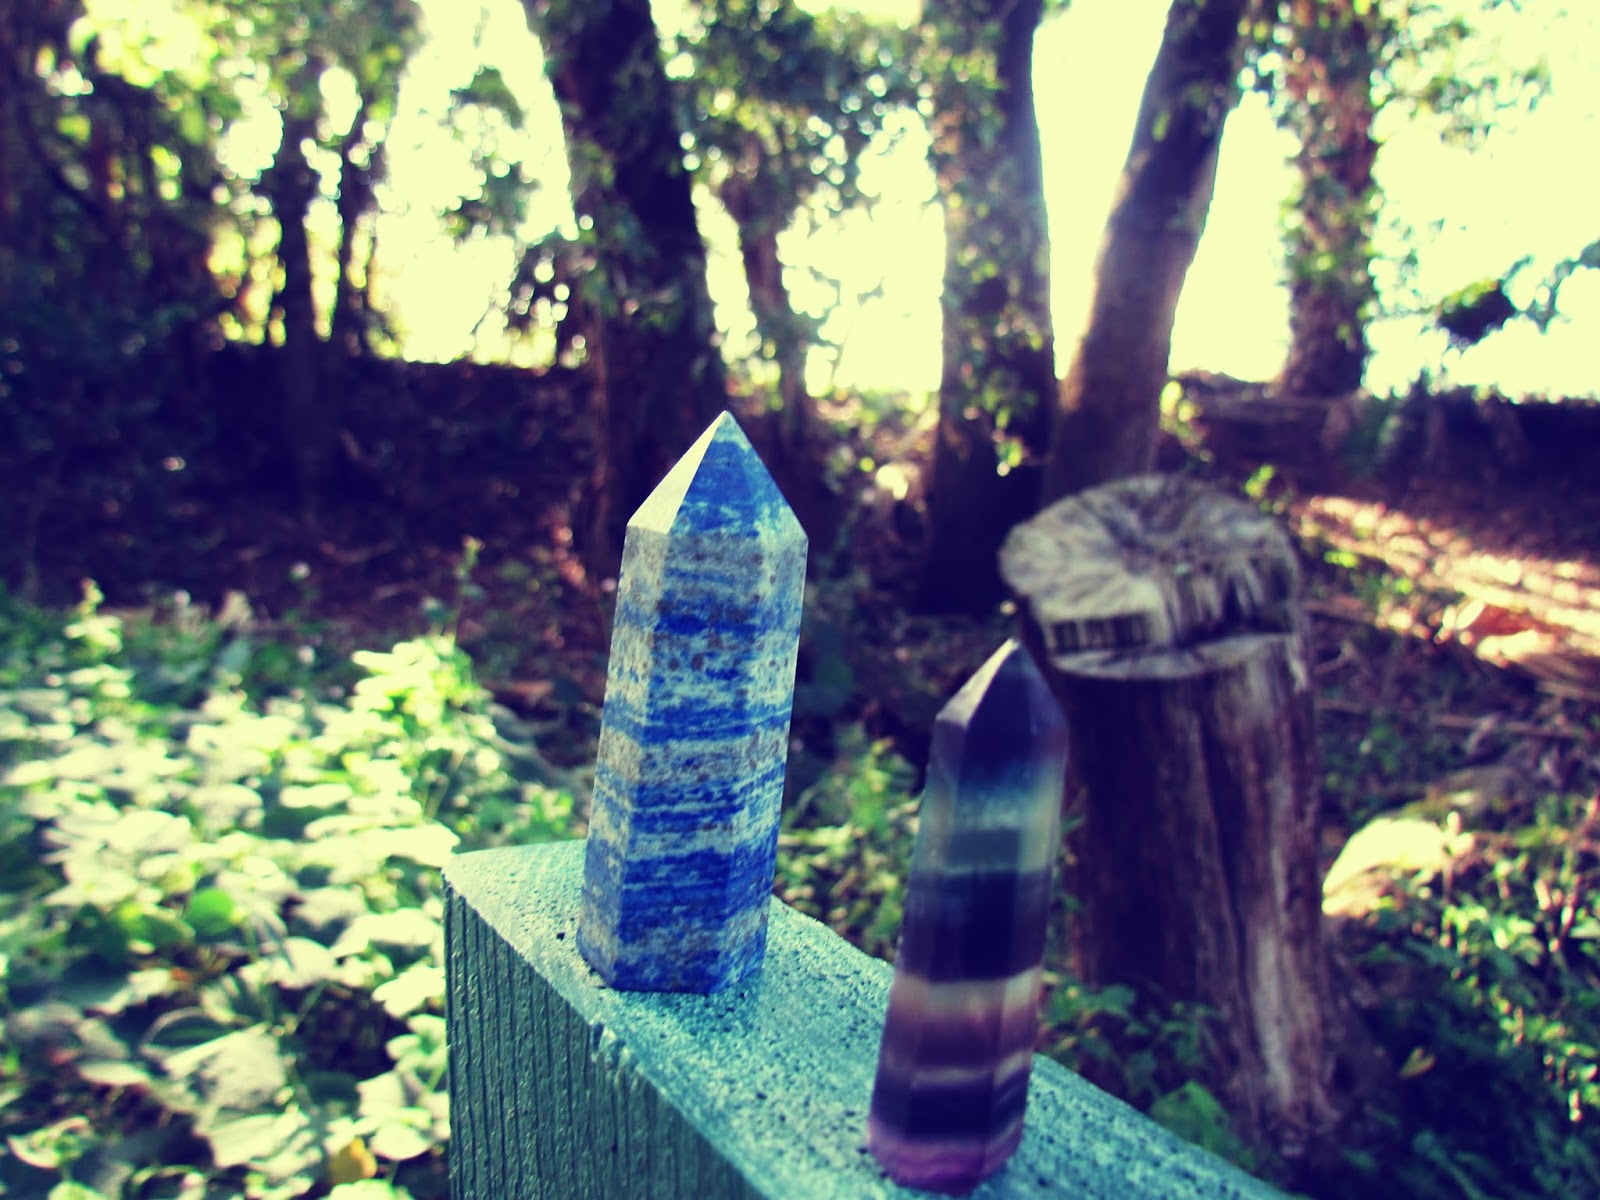 A rainbow banded fluorite gemstone wand and a blue lapis lazuli crystal wand catching sunlight in a nature park in Florida